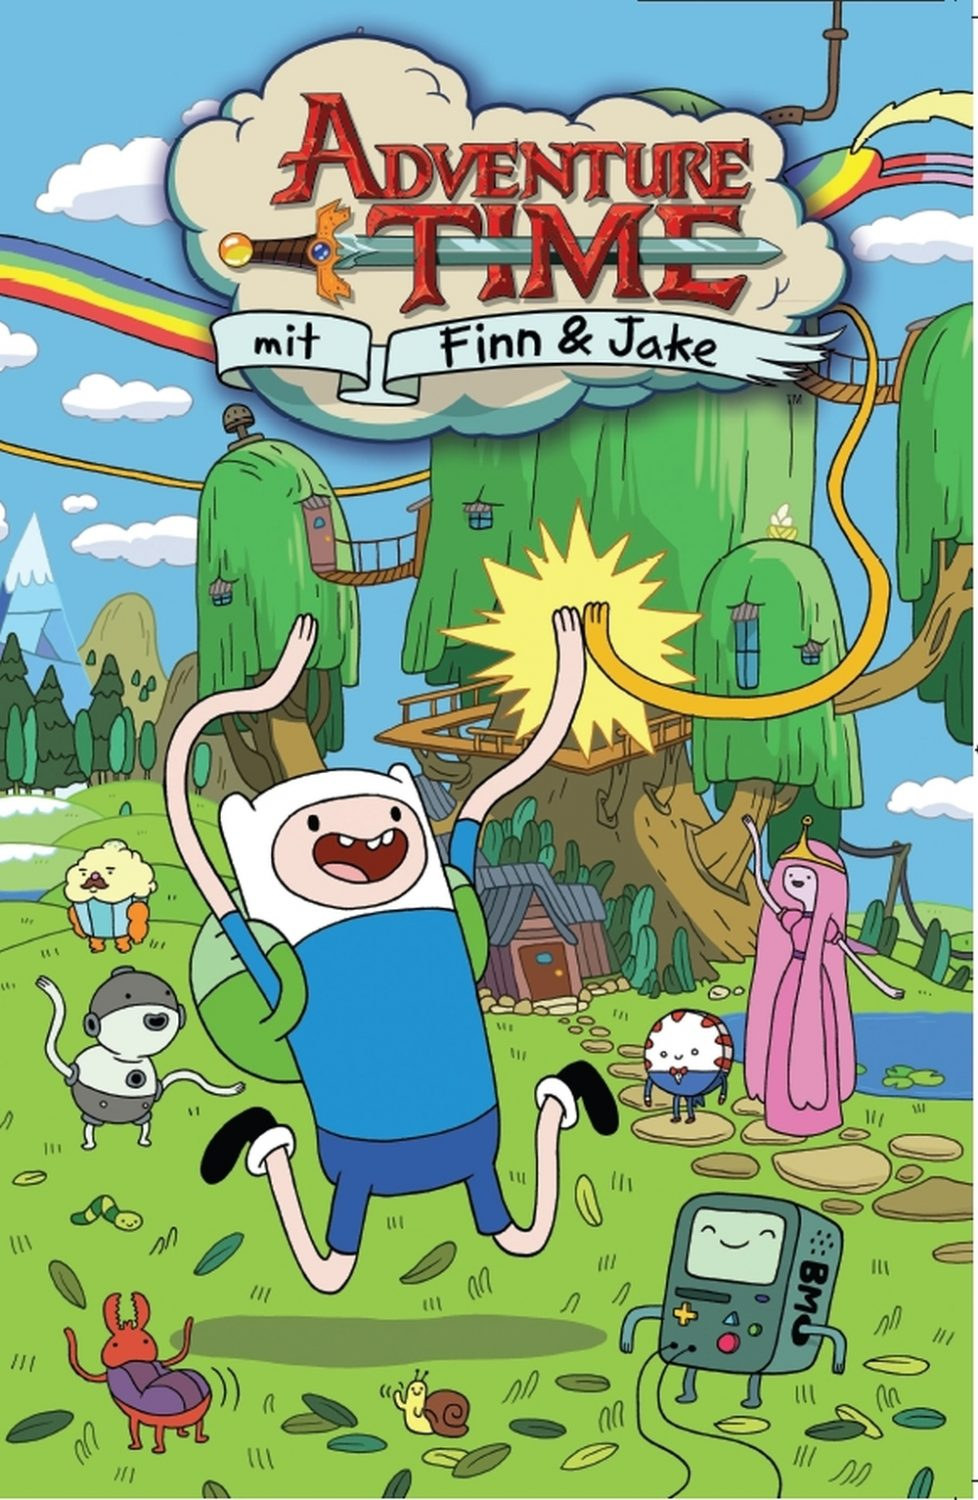 Adventure Time #1 (Softcover, reguläre Ausgabe)